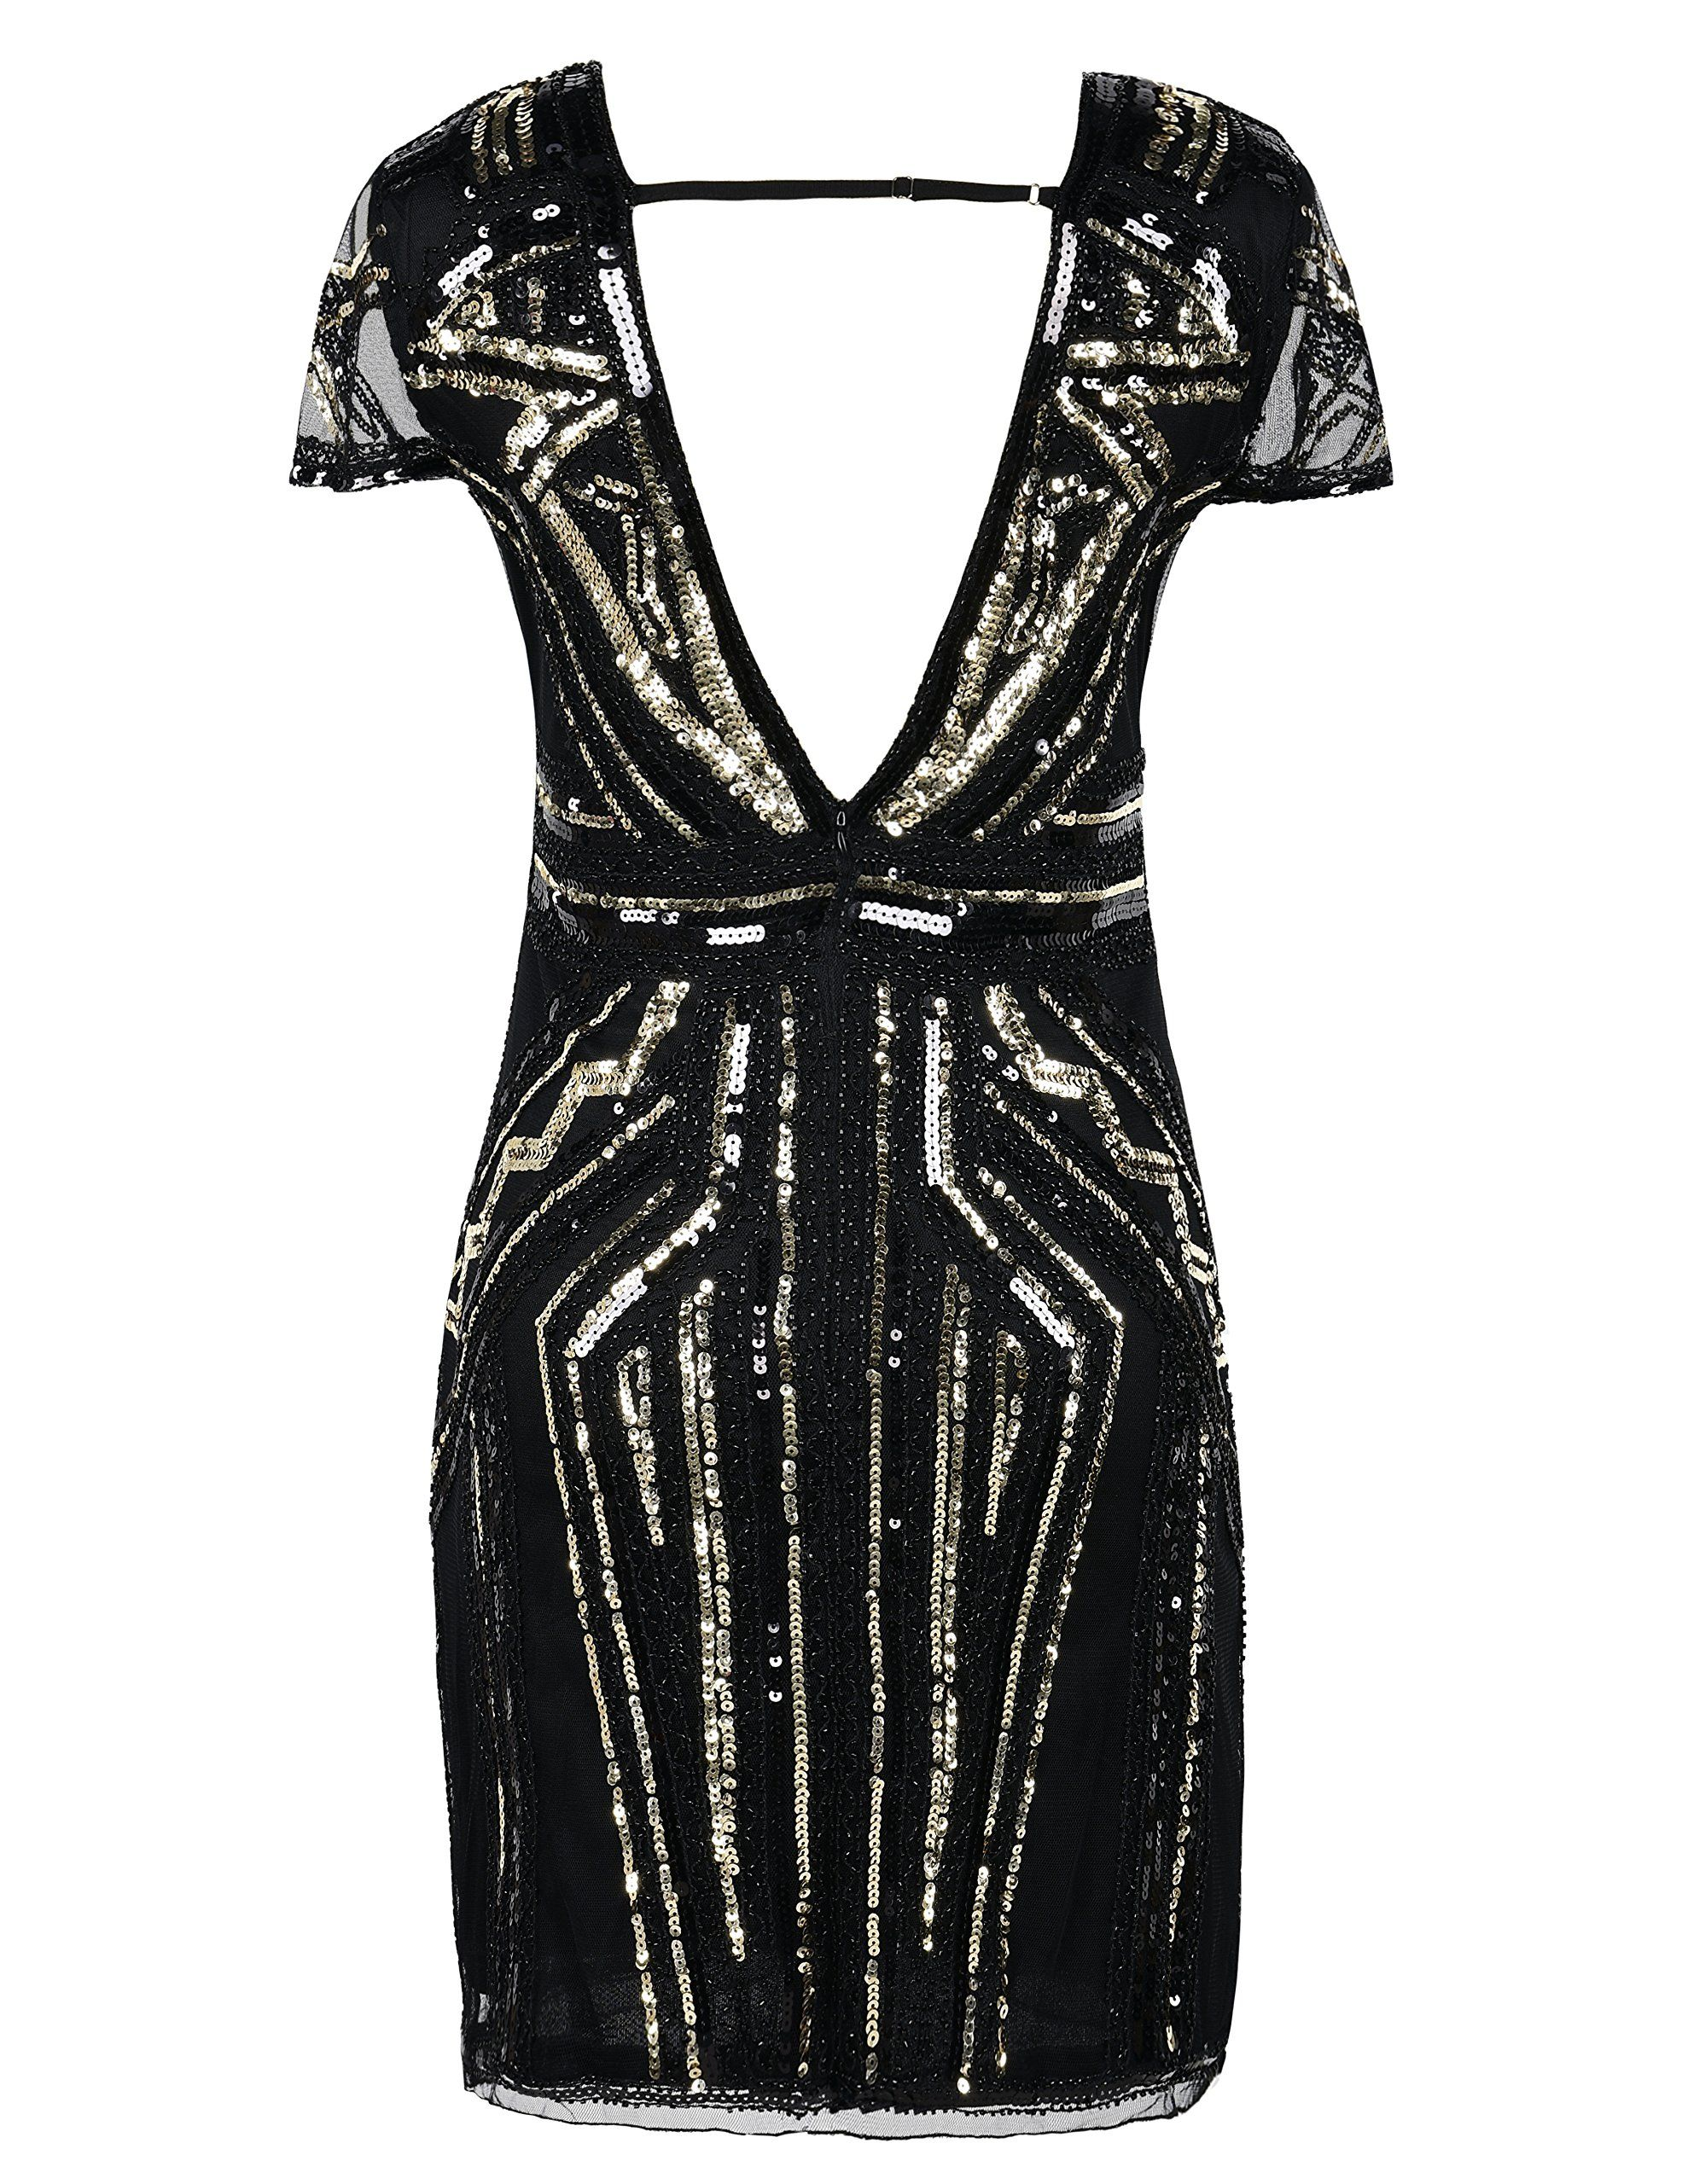 Prettyguide womens s dress vintage inspired sequin cocktail